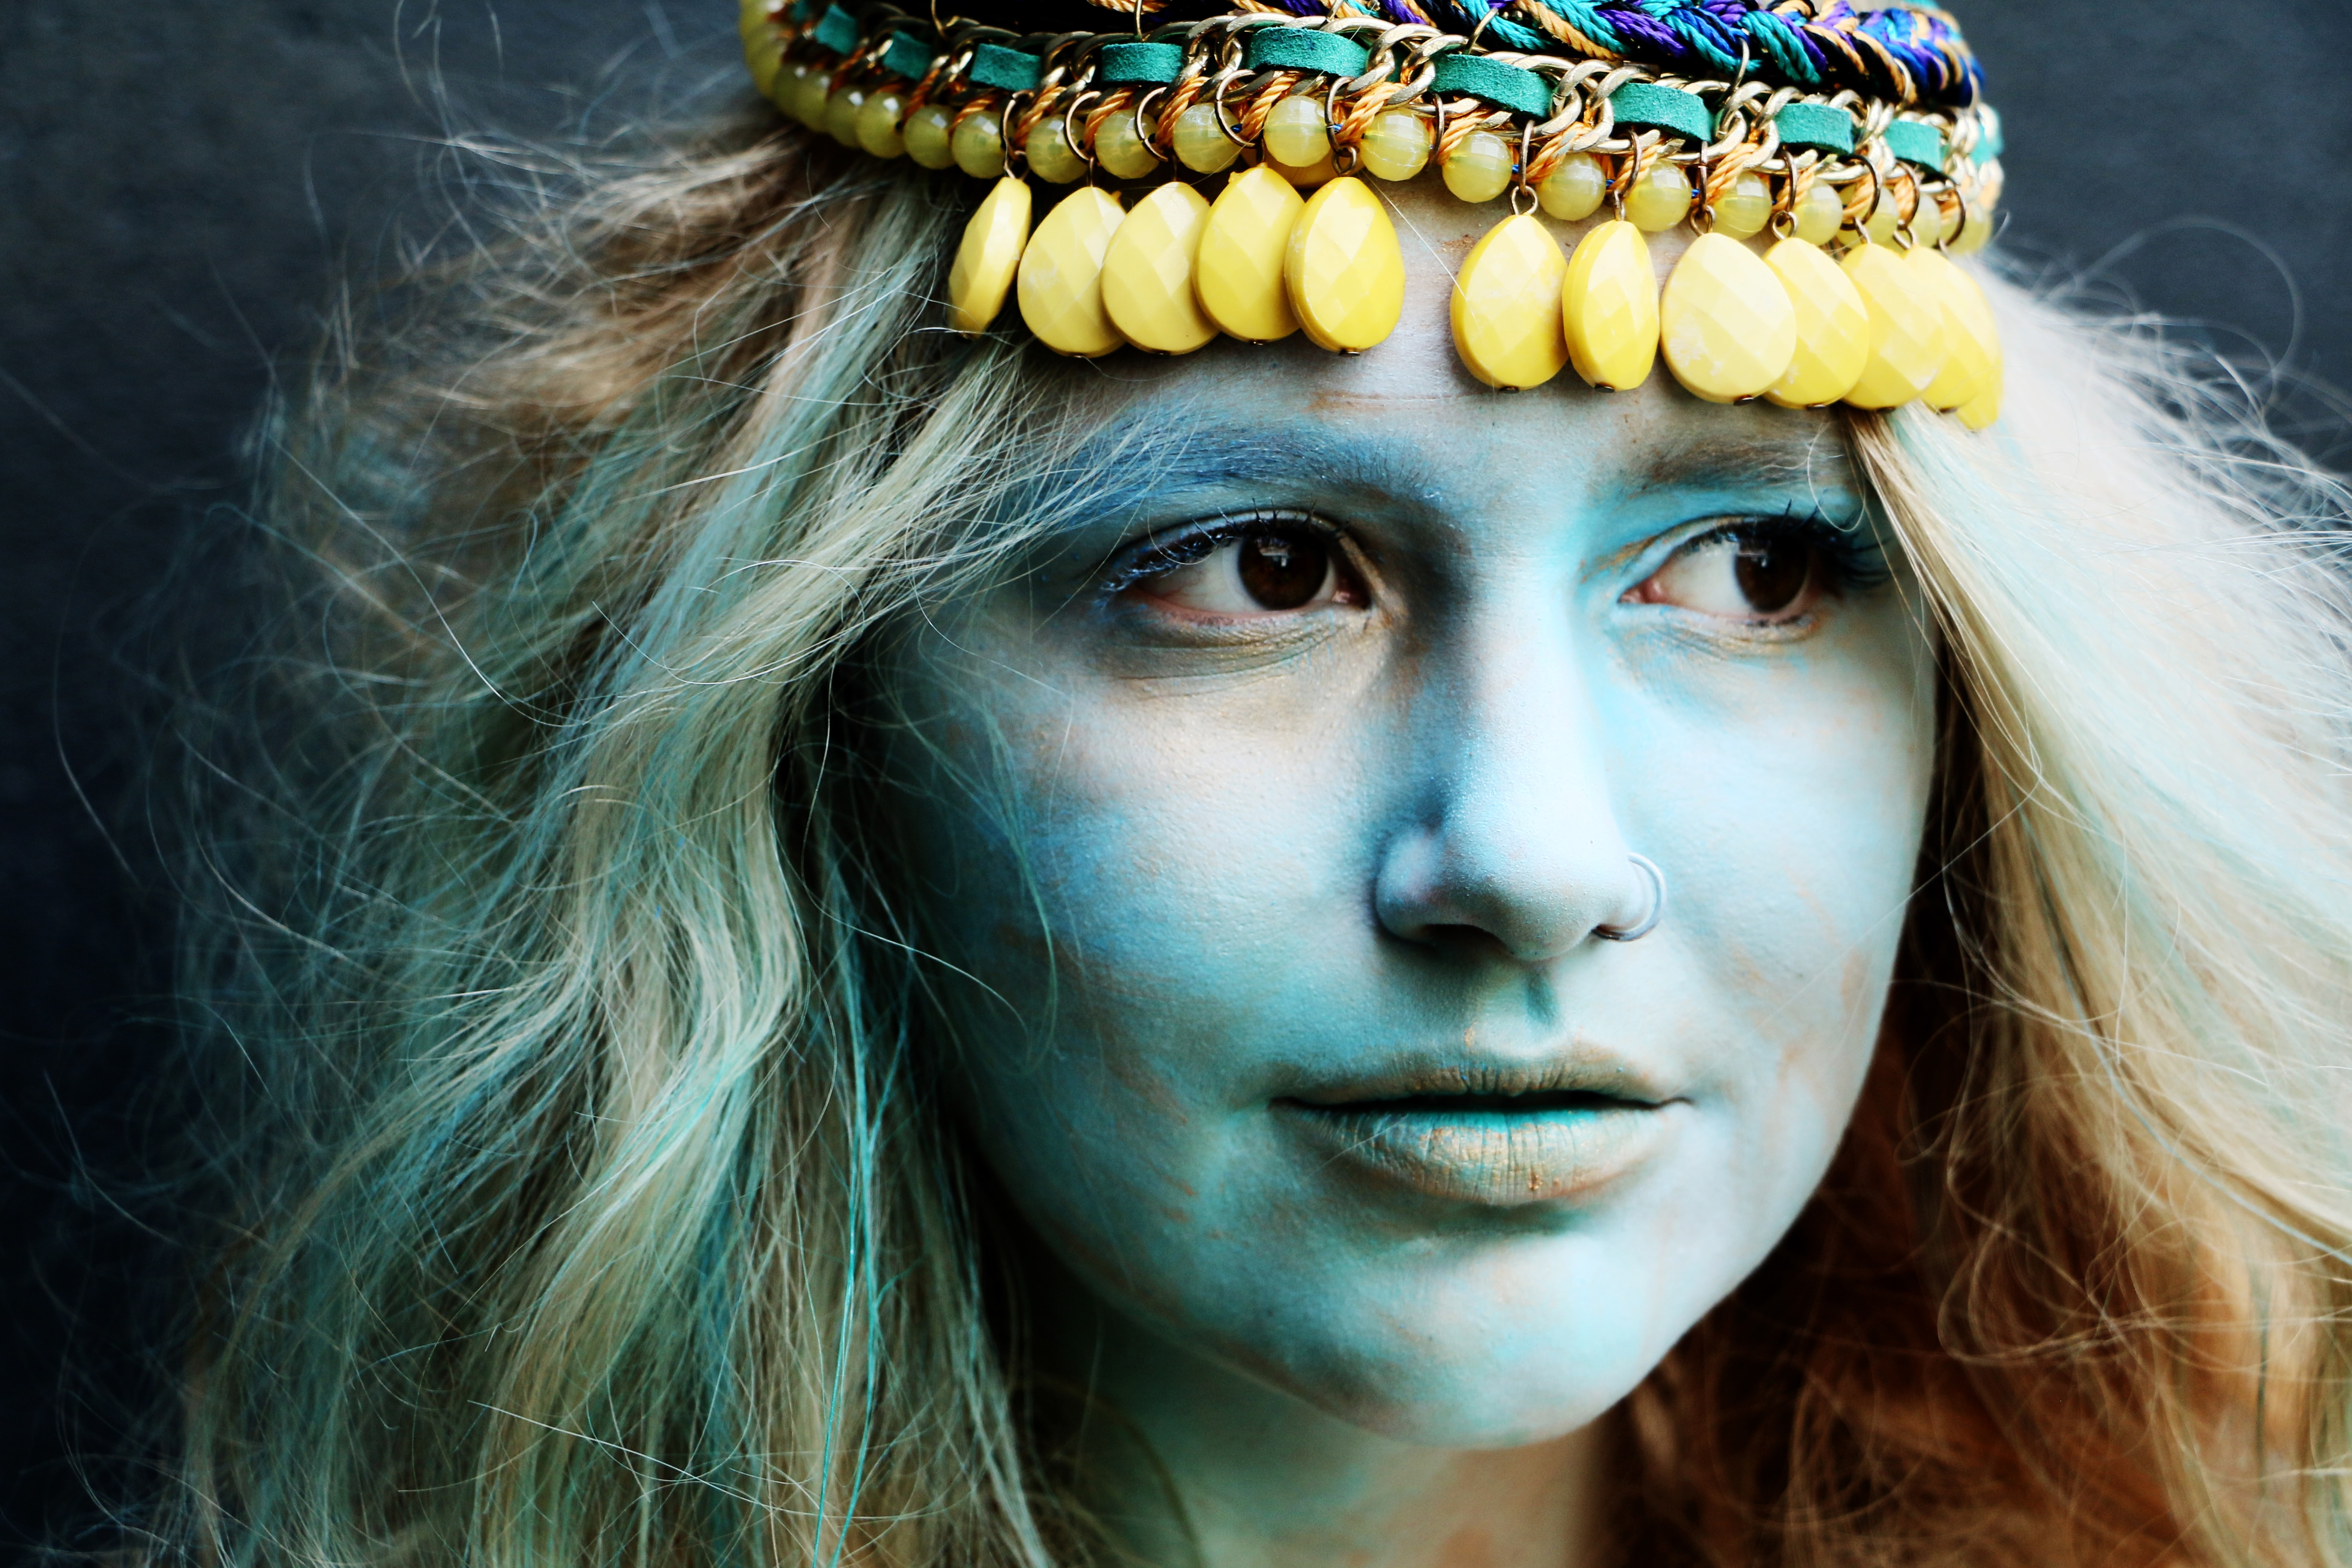 woman wearing blue and green traditional headdres